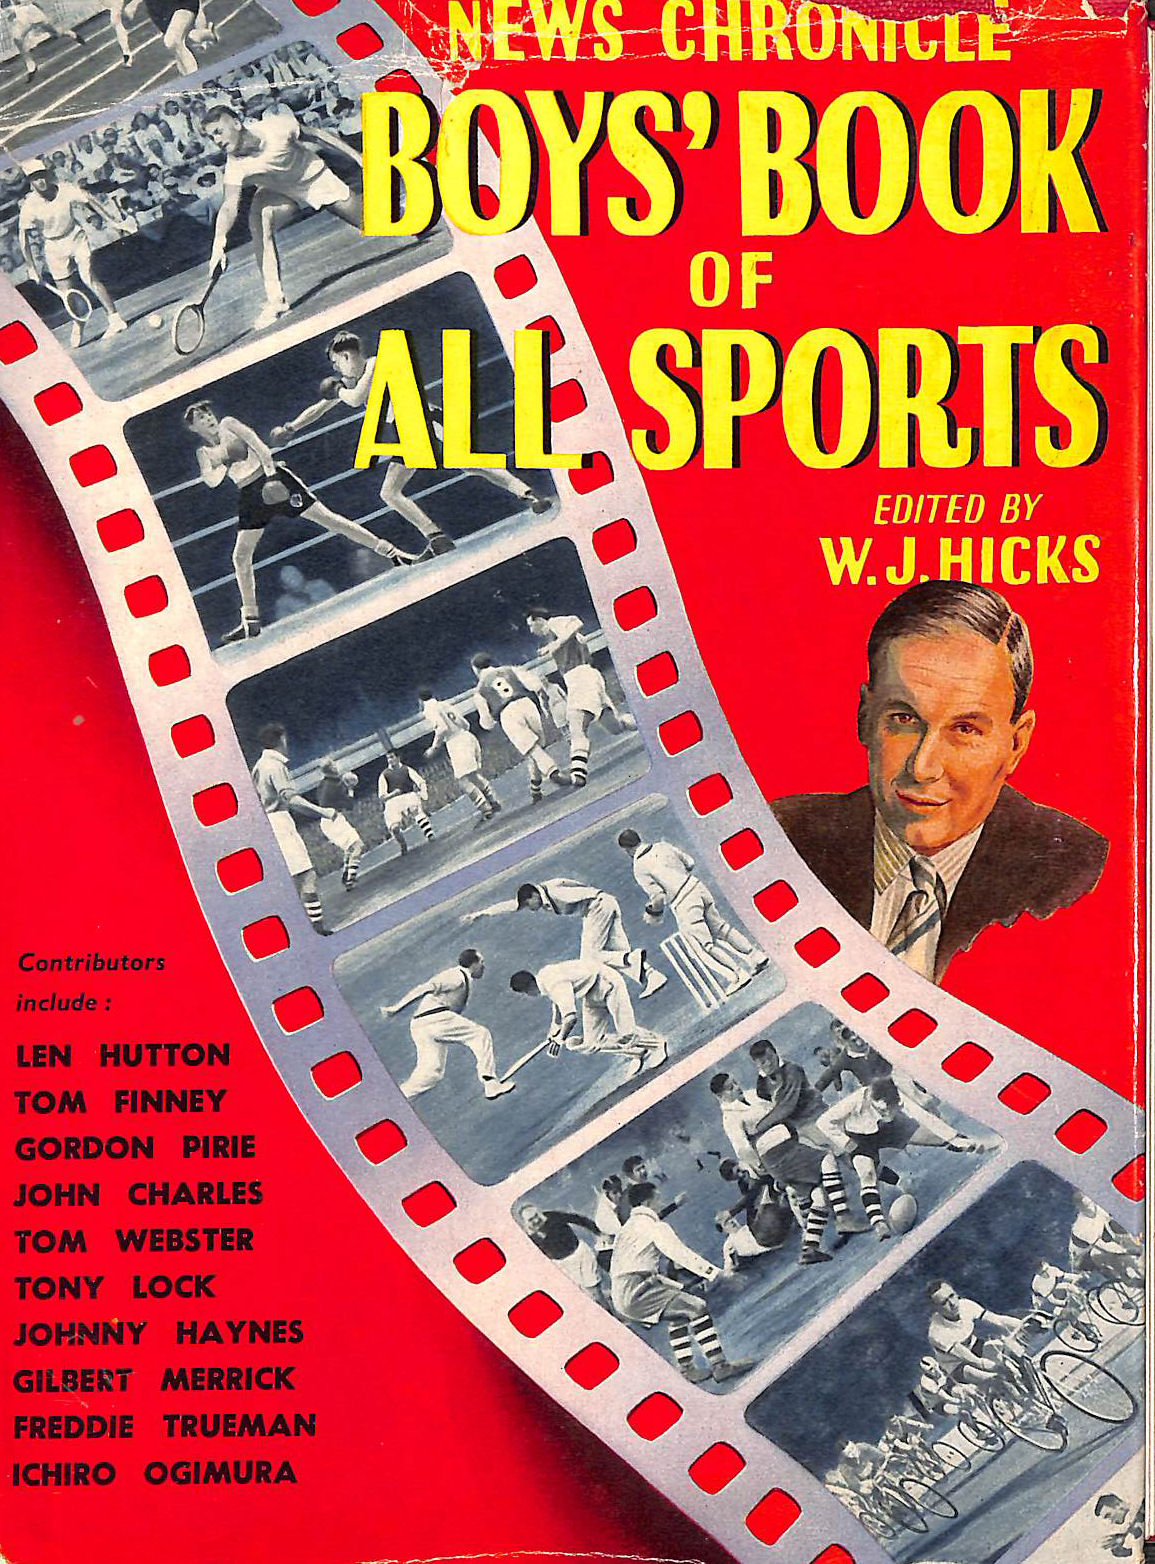 Image for Boy's Book of All Sports (1955)